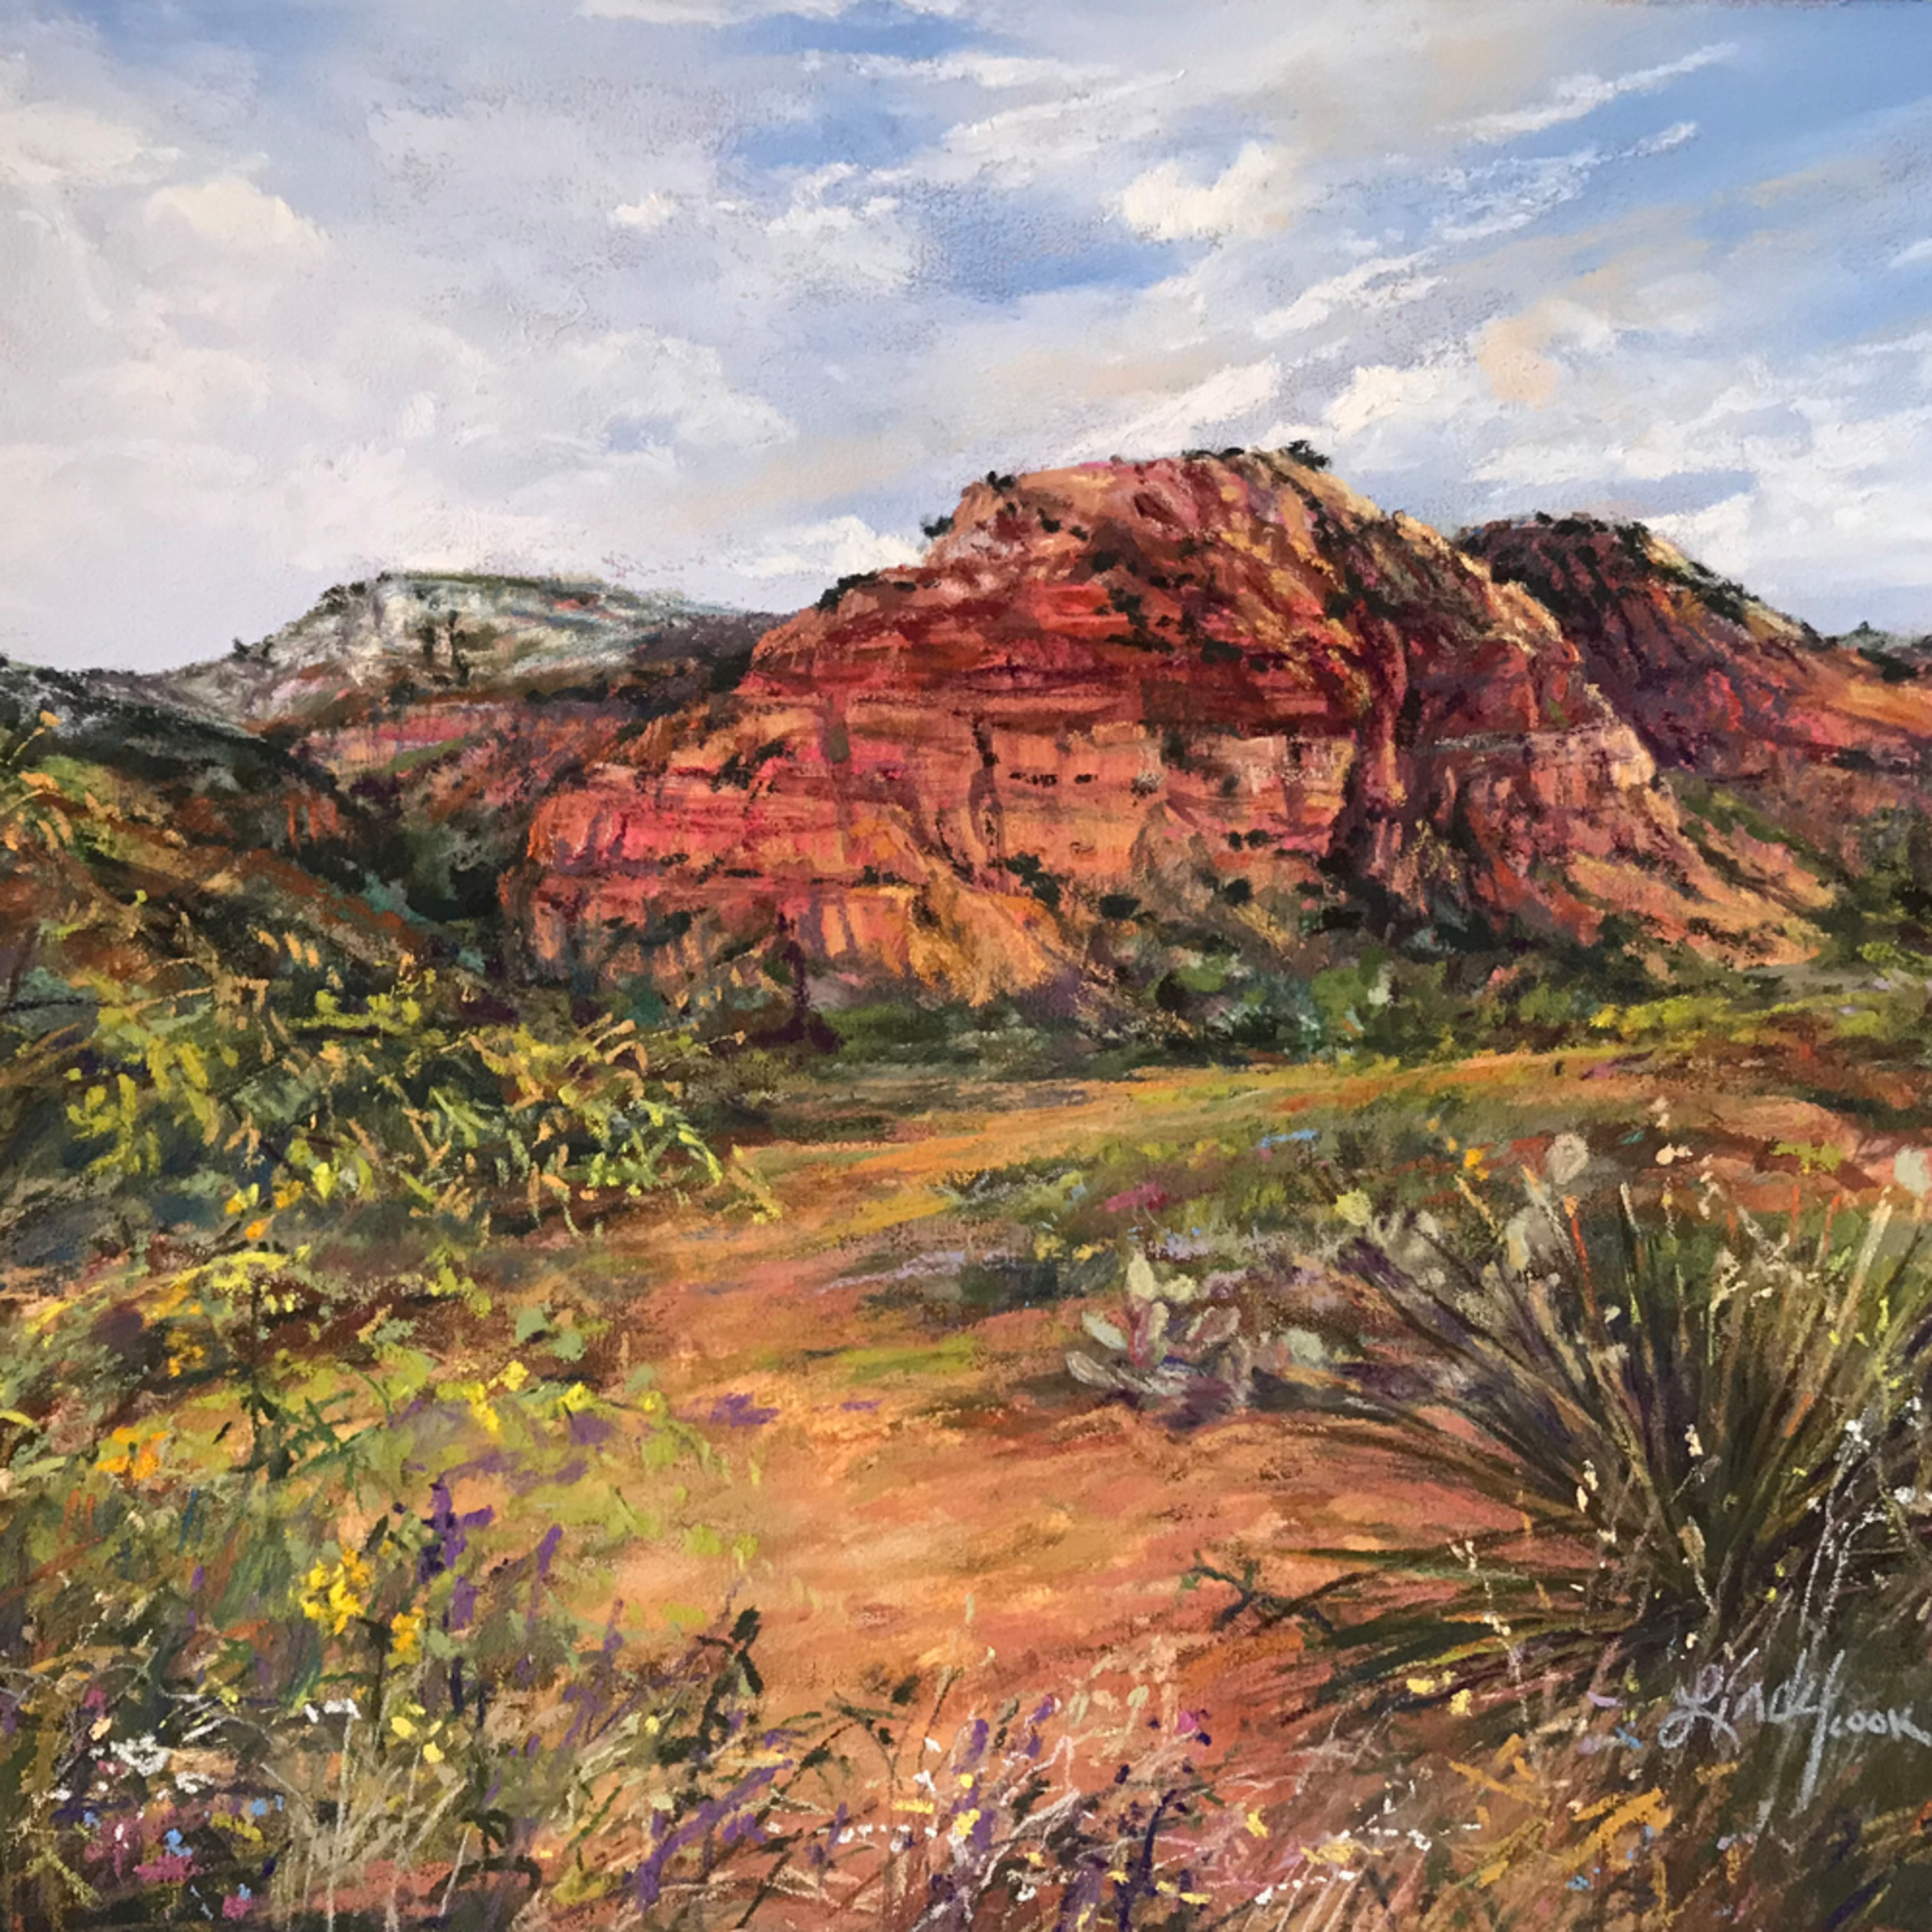 14h18 canyons are calling 8inx10in pastel lindy cook severns copy ytwmqv